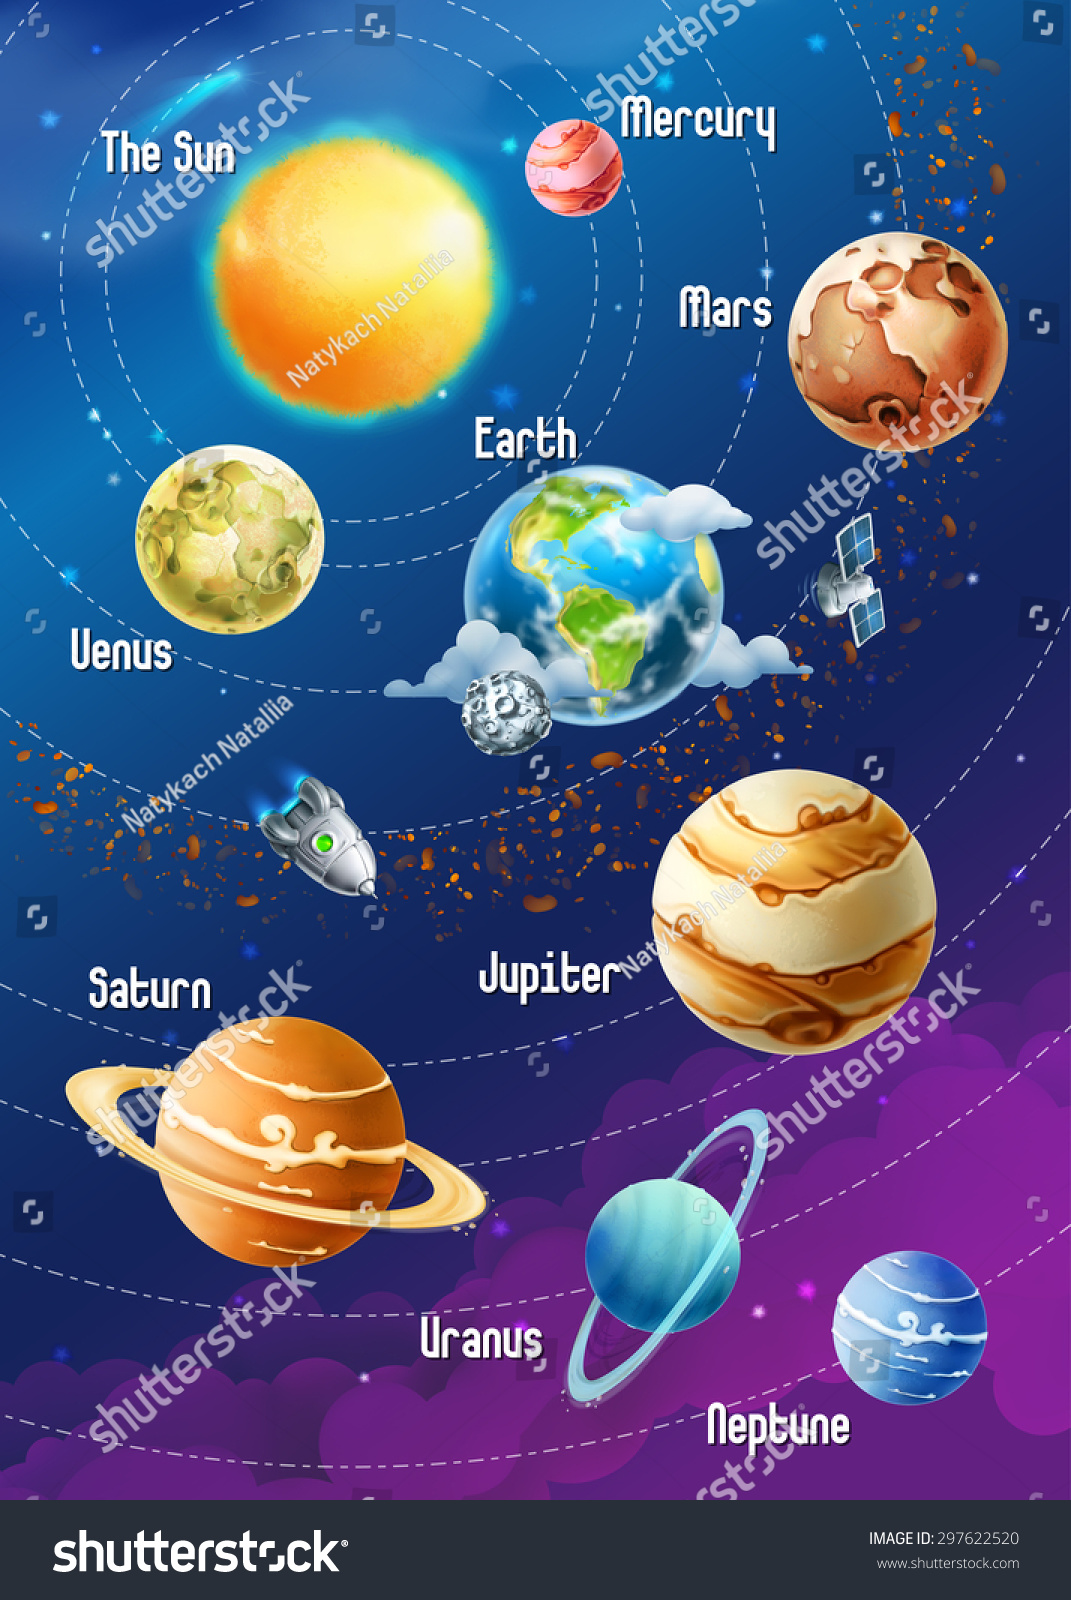 solar system poster vertical - photo #11